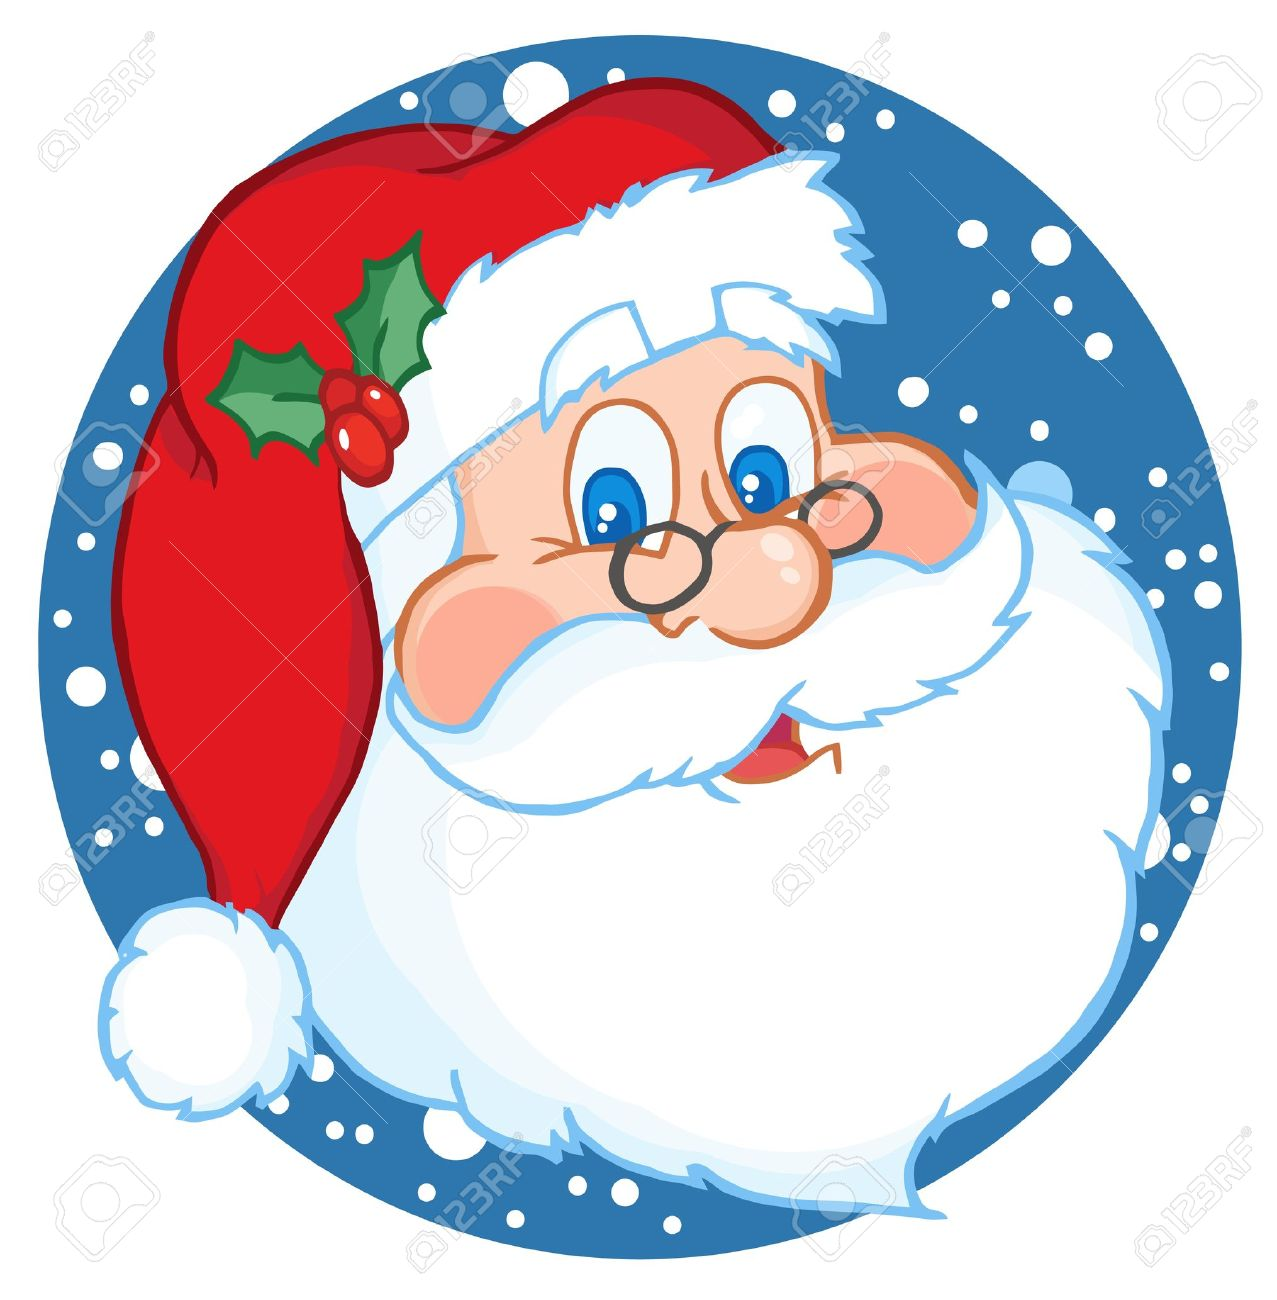 classic santa claus face royalty free cliparts vectors and stock rh 123rf com happy santa face clip art santa claus face clipart